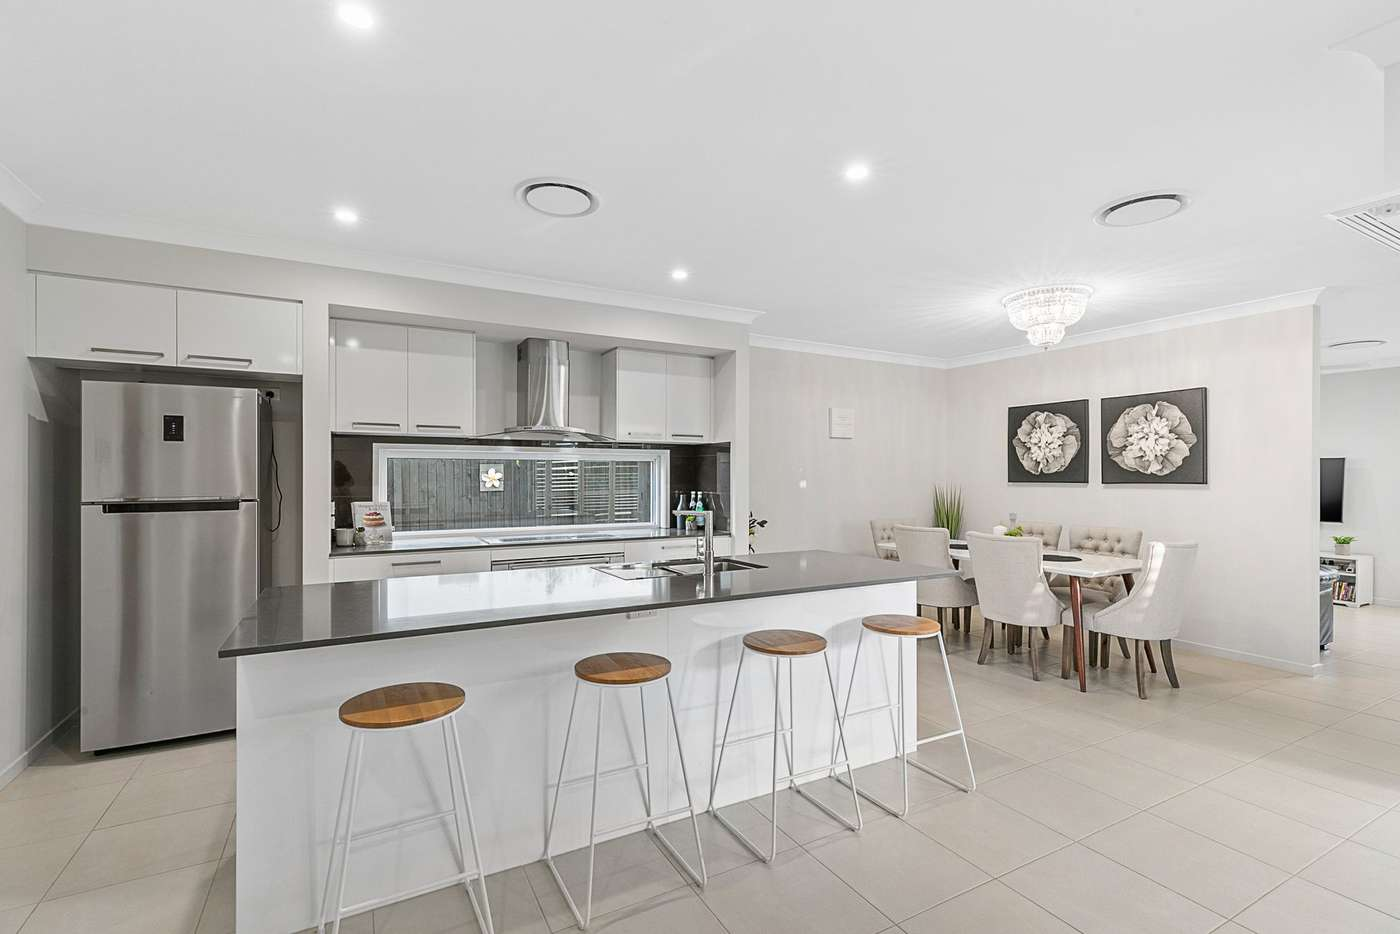 Fifth view of Homely house listing, 11 Seaside Close, Thorneside QLD 4158